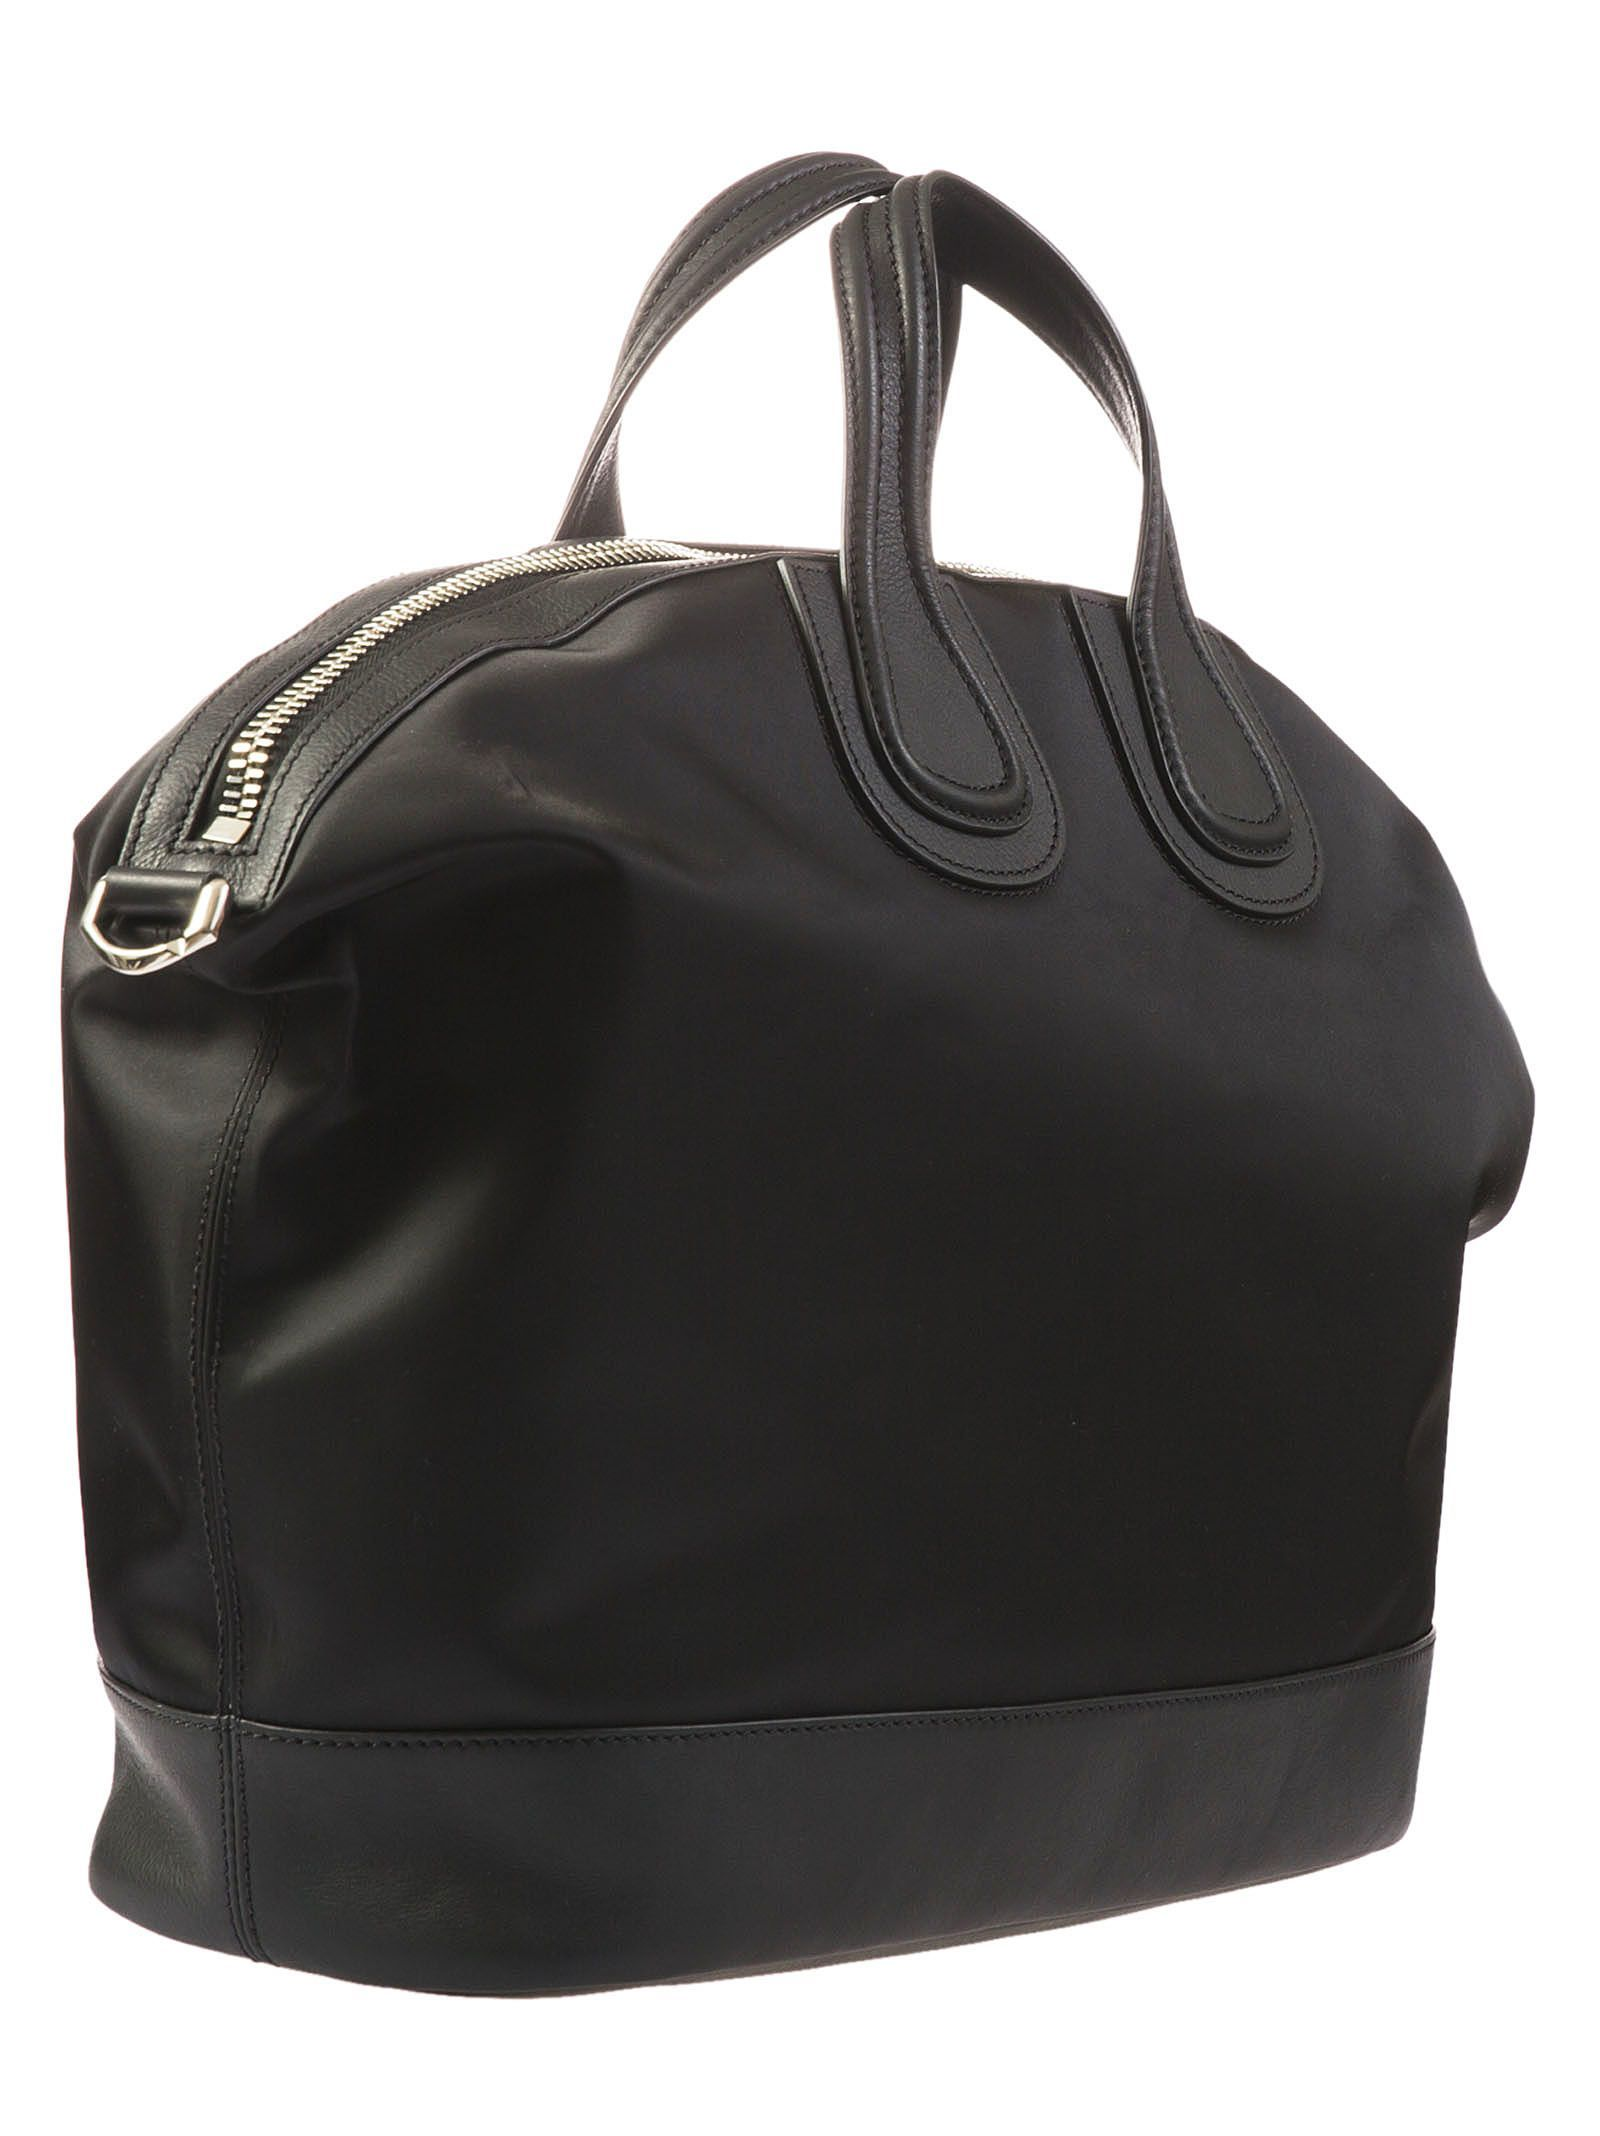 5ab175a29d9b GIVENCHY MA-1 NIGHTINGALE HOLDALL.  givenchy  bags  shoulder bags  hand bags   leather